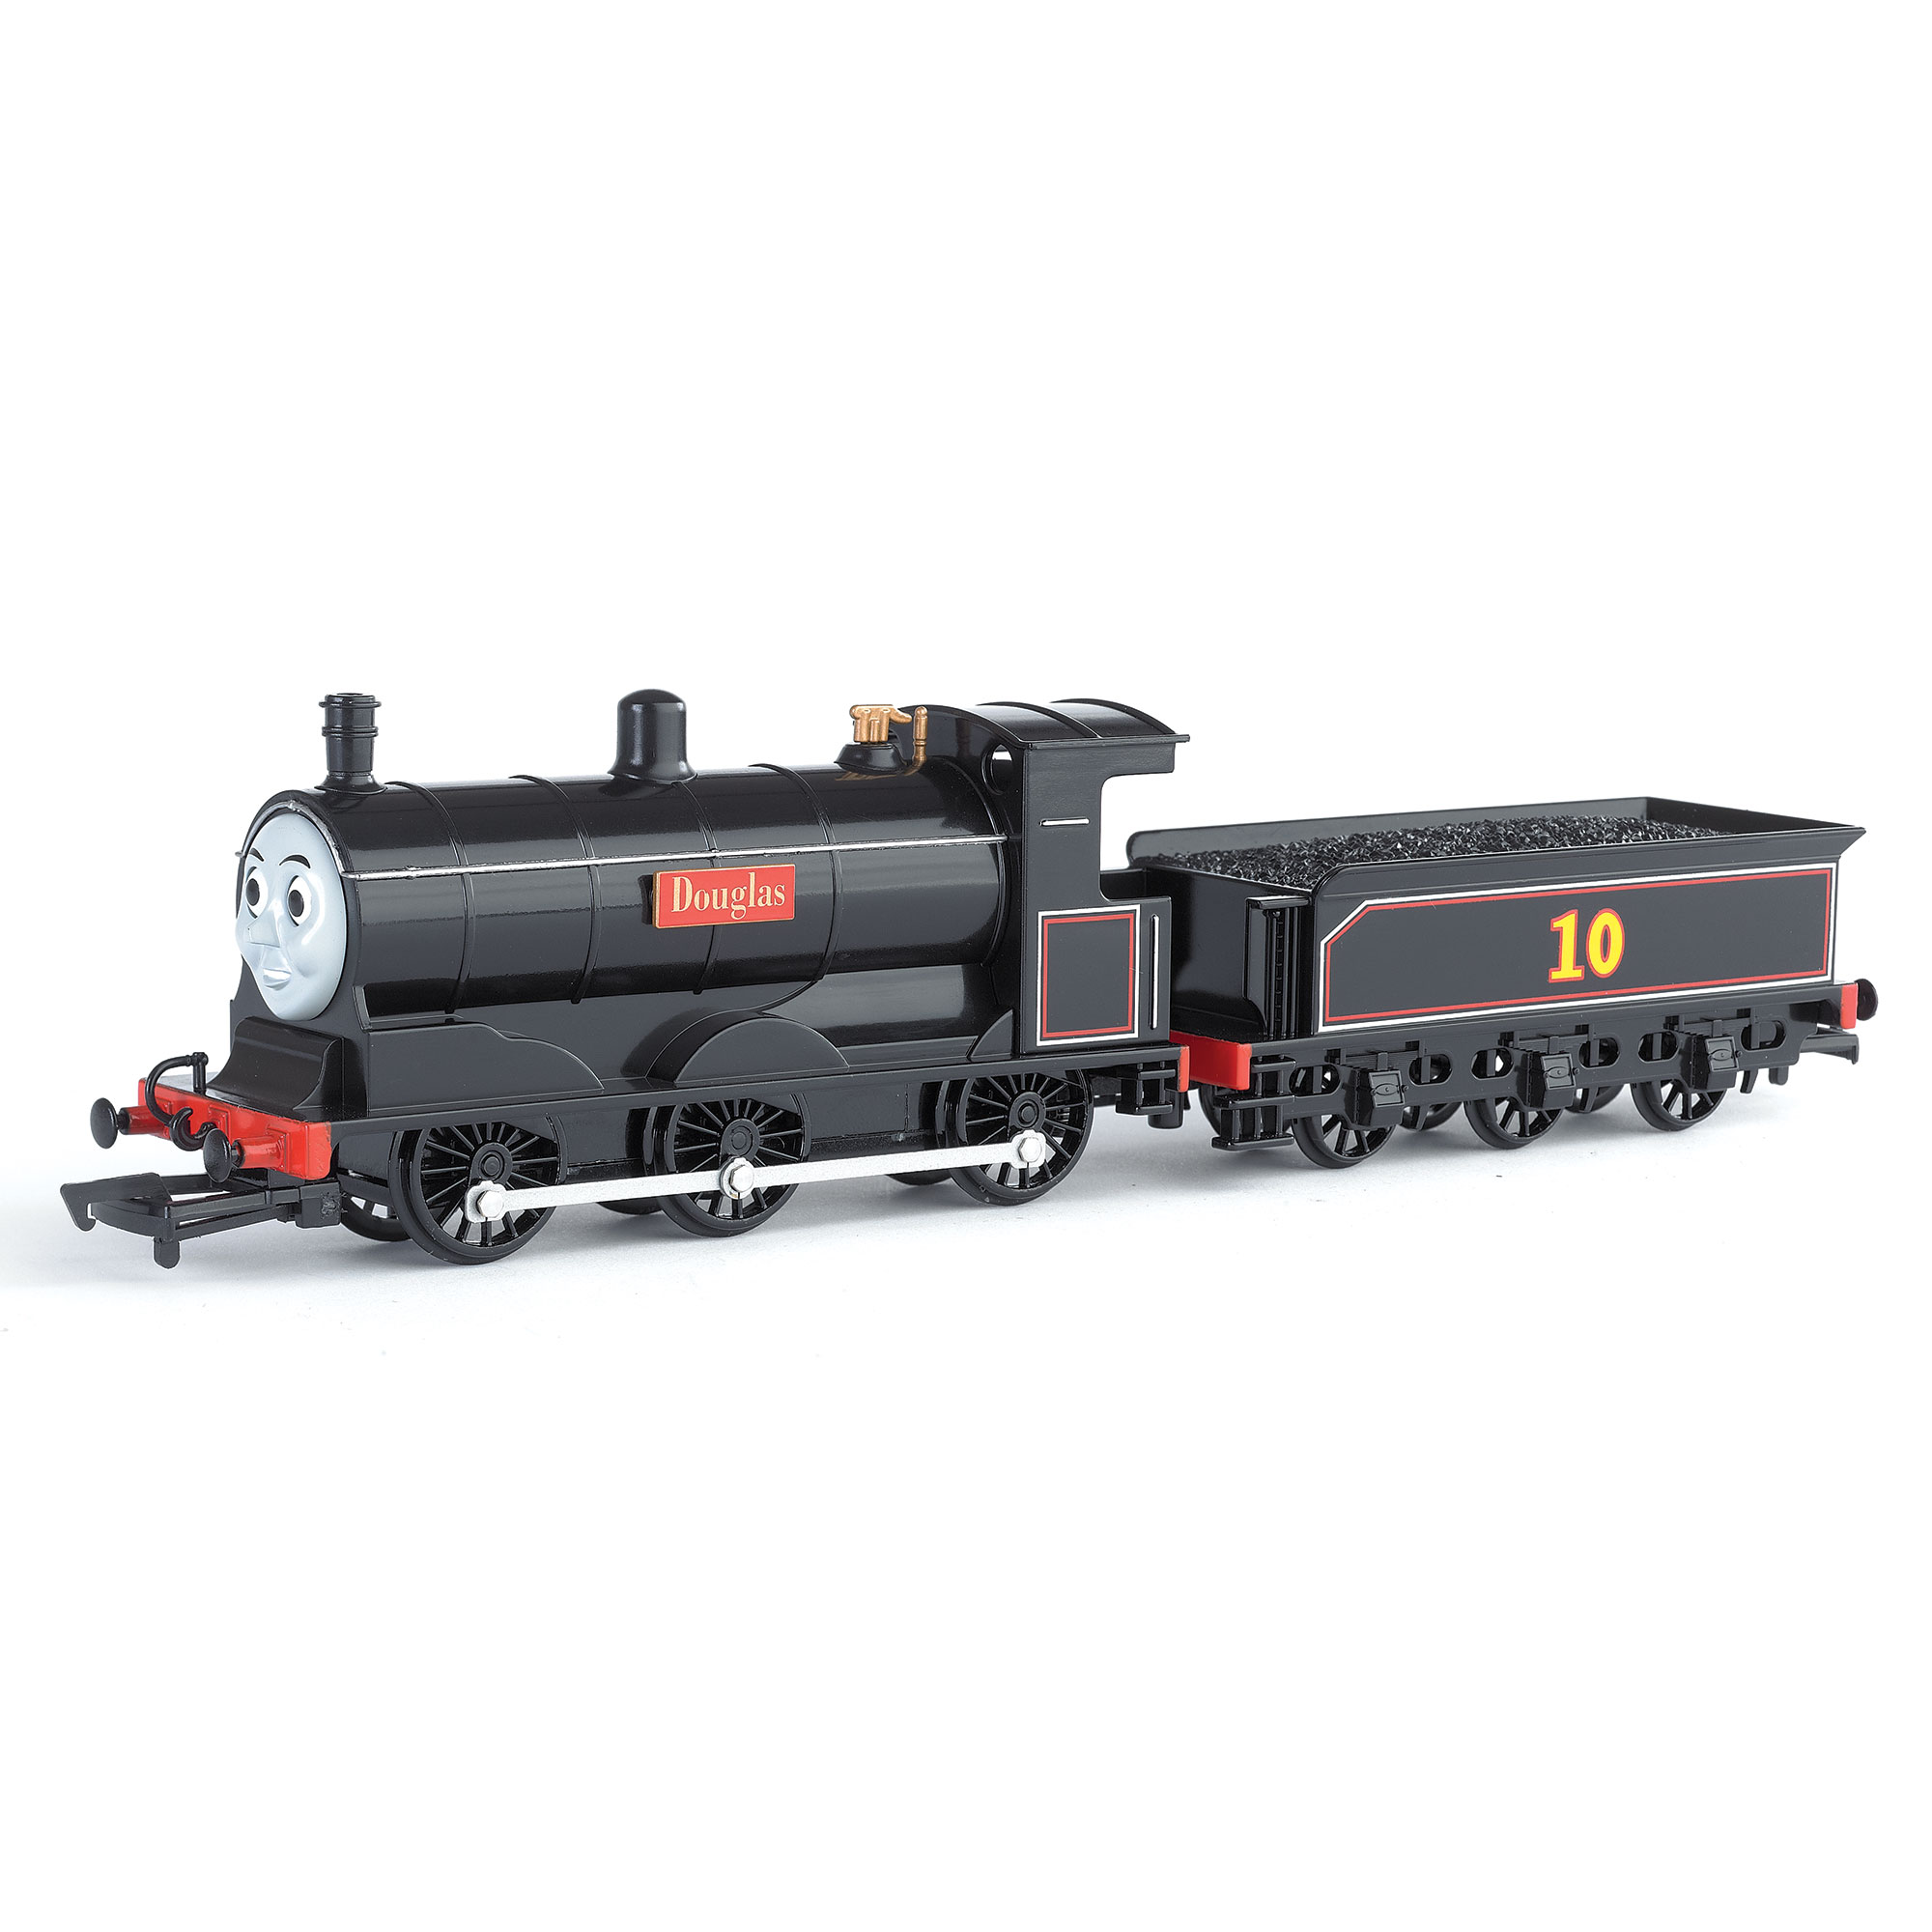 Bachmann Trains Thomas and Friends Douglas Locomotive with Moving Eyes, HO Scale Train by Bachmann